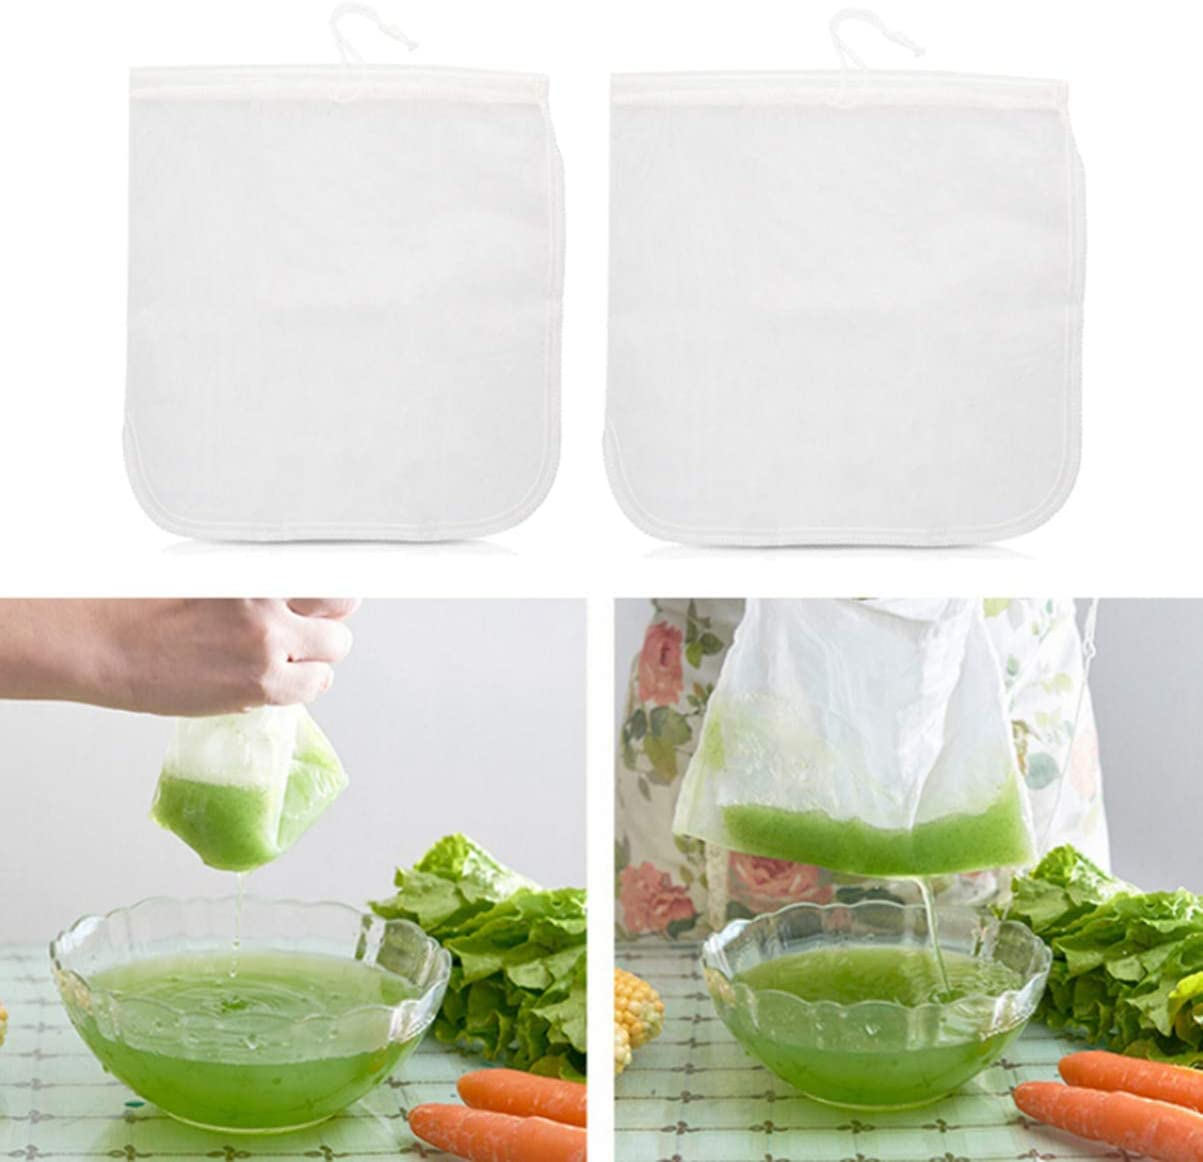 Cheesecloth Bag for Kitchen White, 30x30cm UPKOCH 3Pcs Soy Milk ...